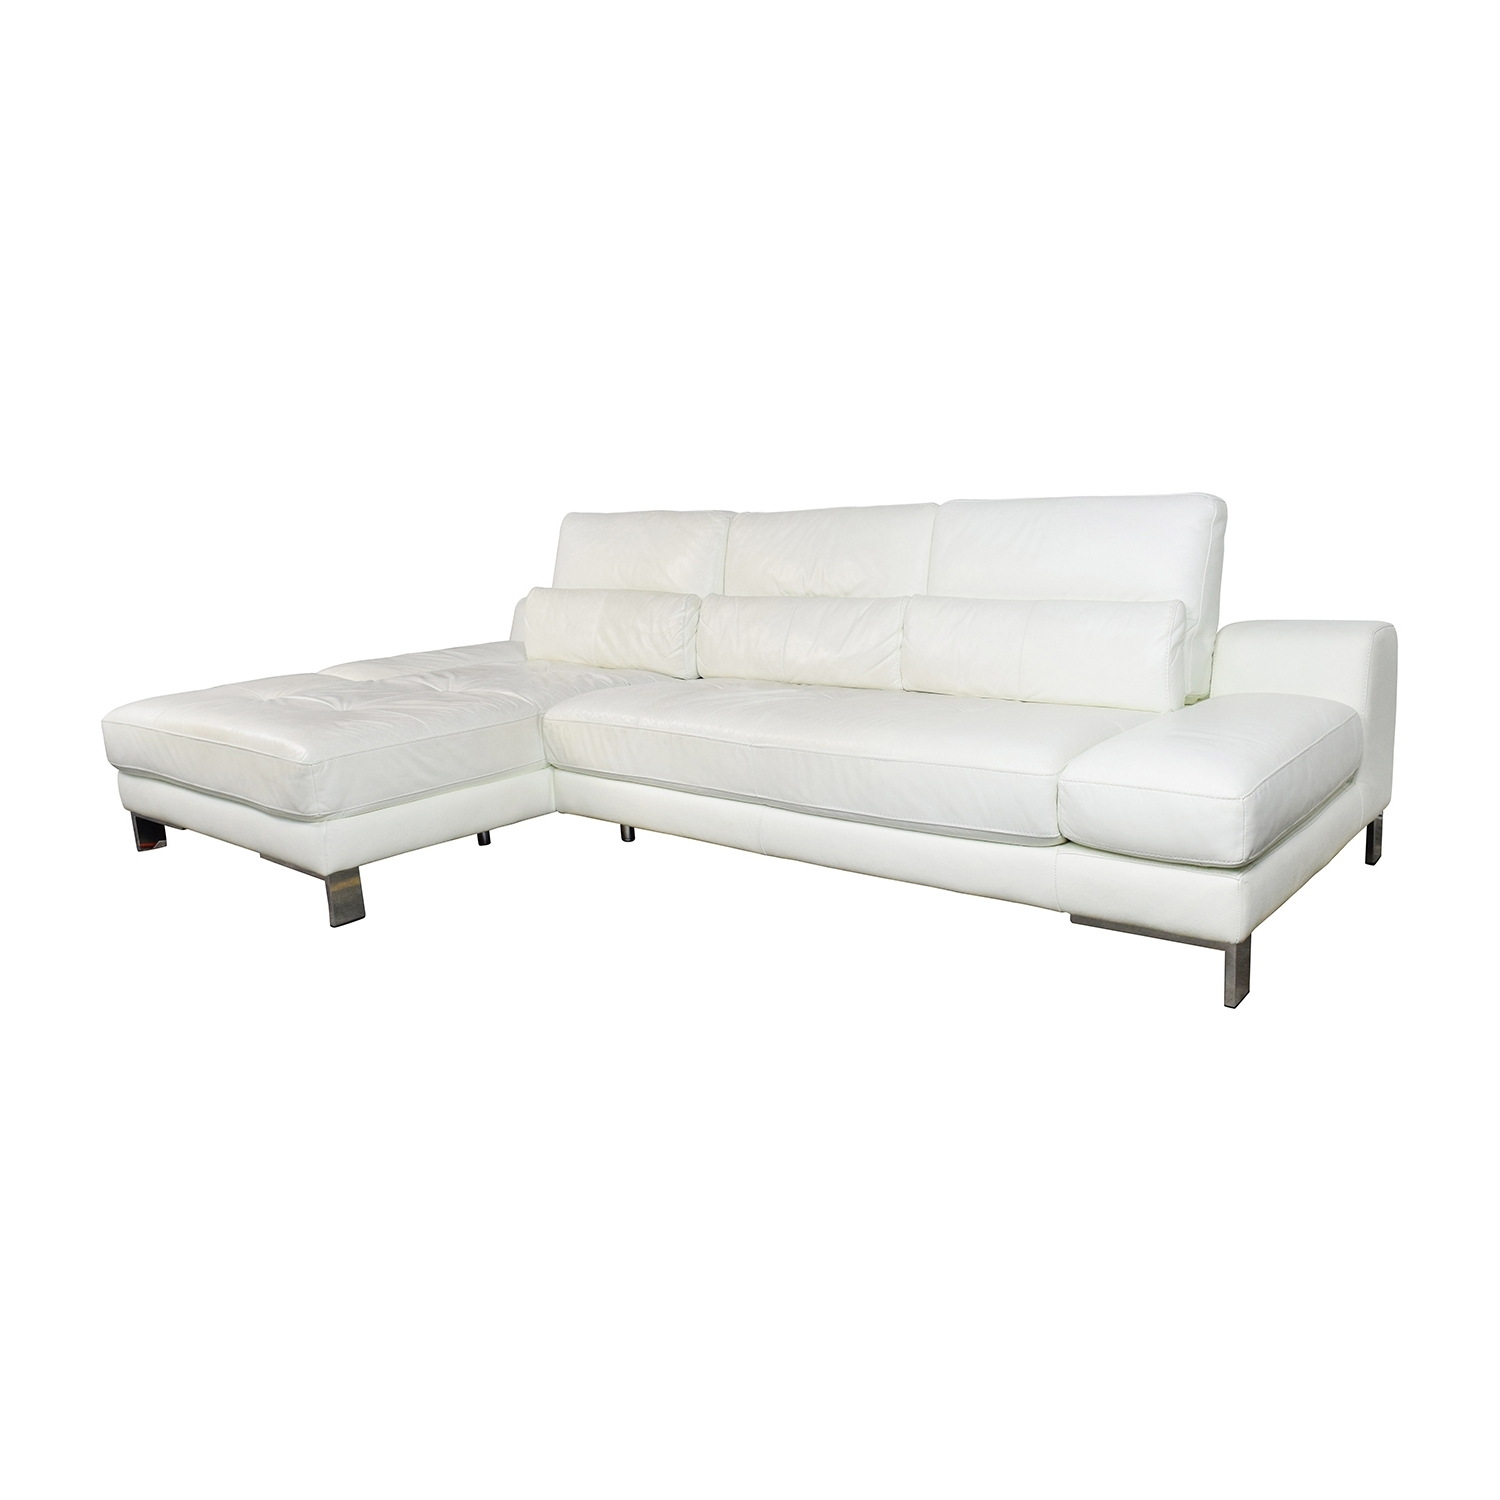 [%72% Off – Mobilia Canada Mobilia Canada Funktion White Leather Regarding Popular Mobilia Sectional Sofas|mobilia Sectional Sofas Throughout 2019 72% Off – Mobilia Canada Mobilia Canada Funktion White Leather|most Recent Mobilia Sectional Sofas For 72% Off – Mobilia Canada Mobilia Canada Funktion White Leather|preferred 72% Off – Mobilia Canada Mobilia Canada Funktion White Leather Pertaining To Mobilia Sectional Sofas%] (View 3 of 20)